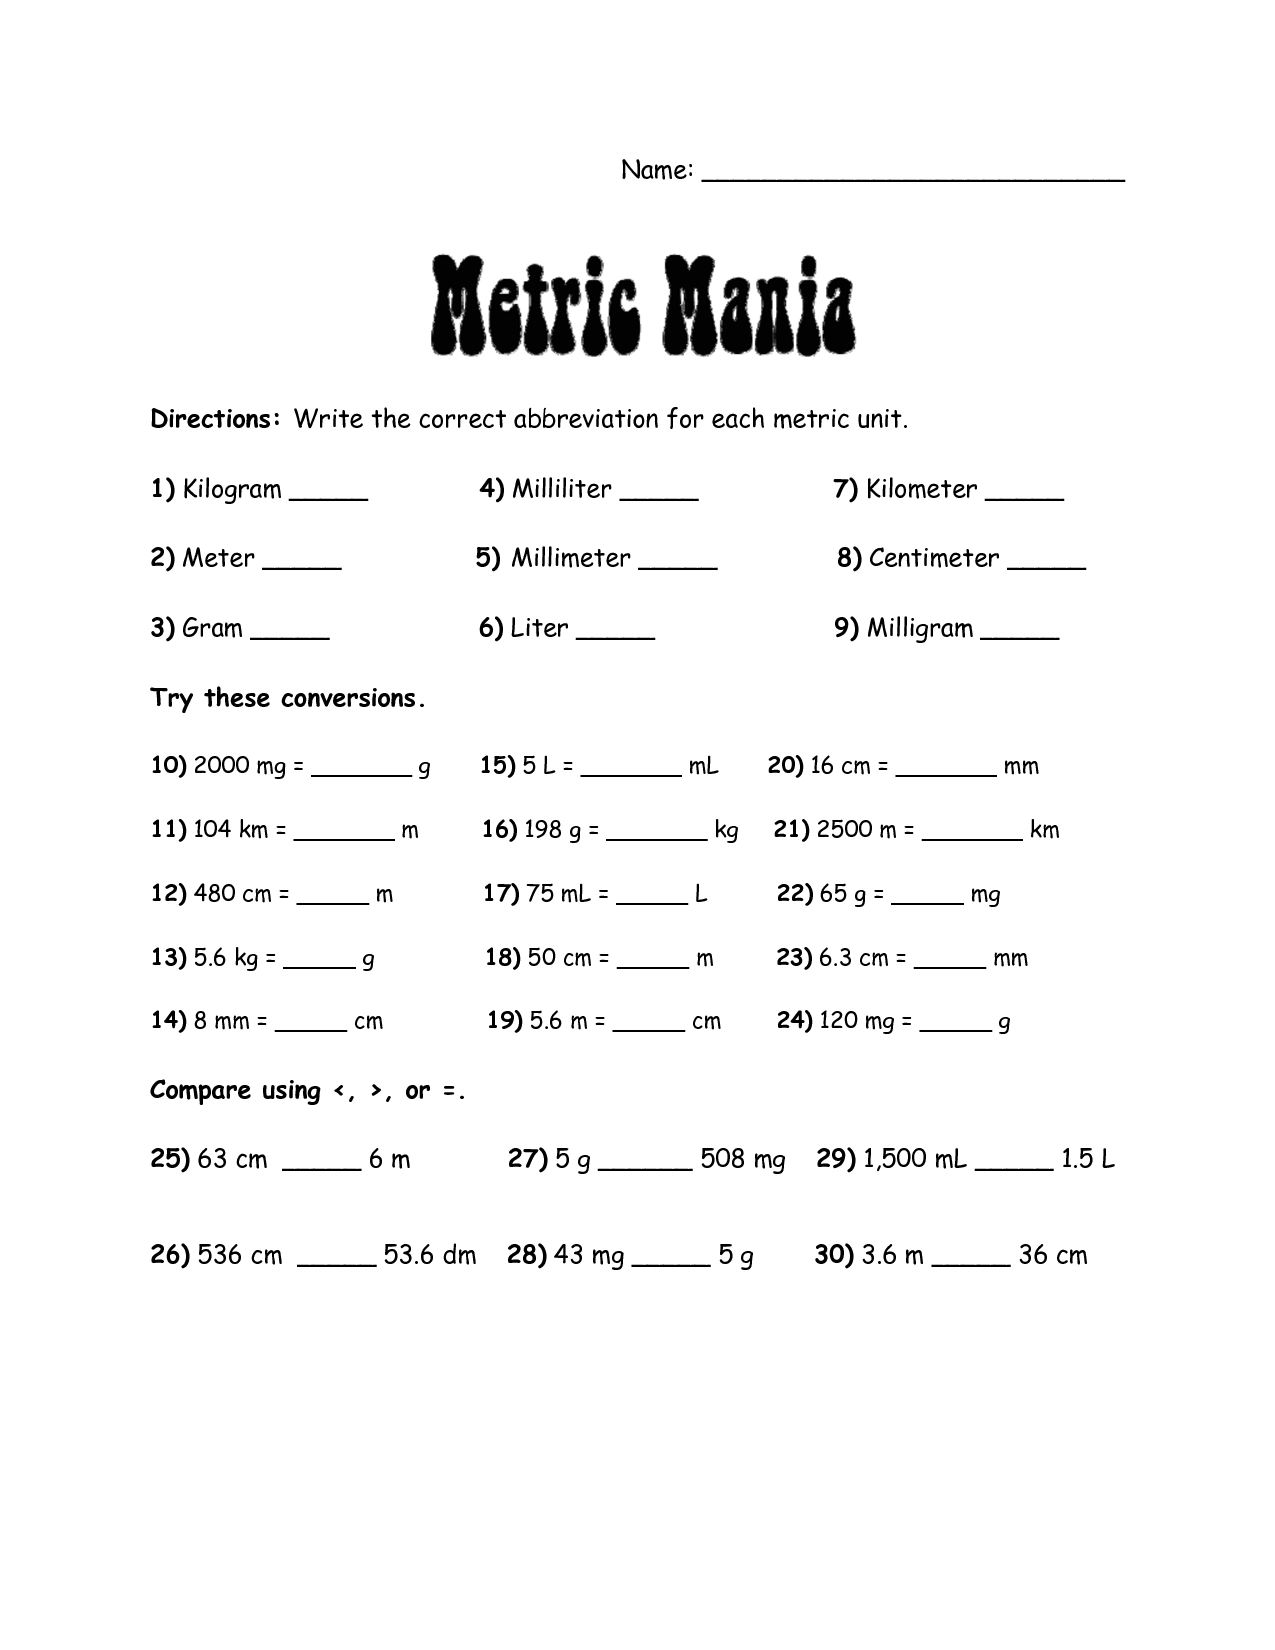 Grade 6 Math Metric Conversion Worksheets 934991